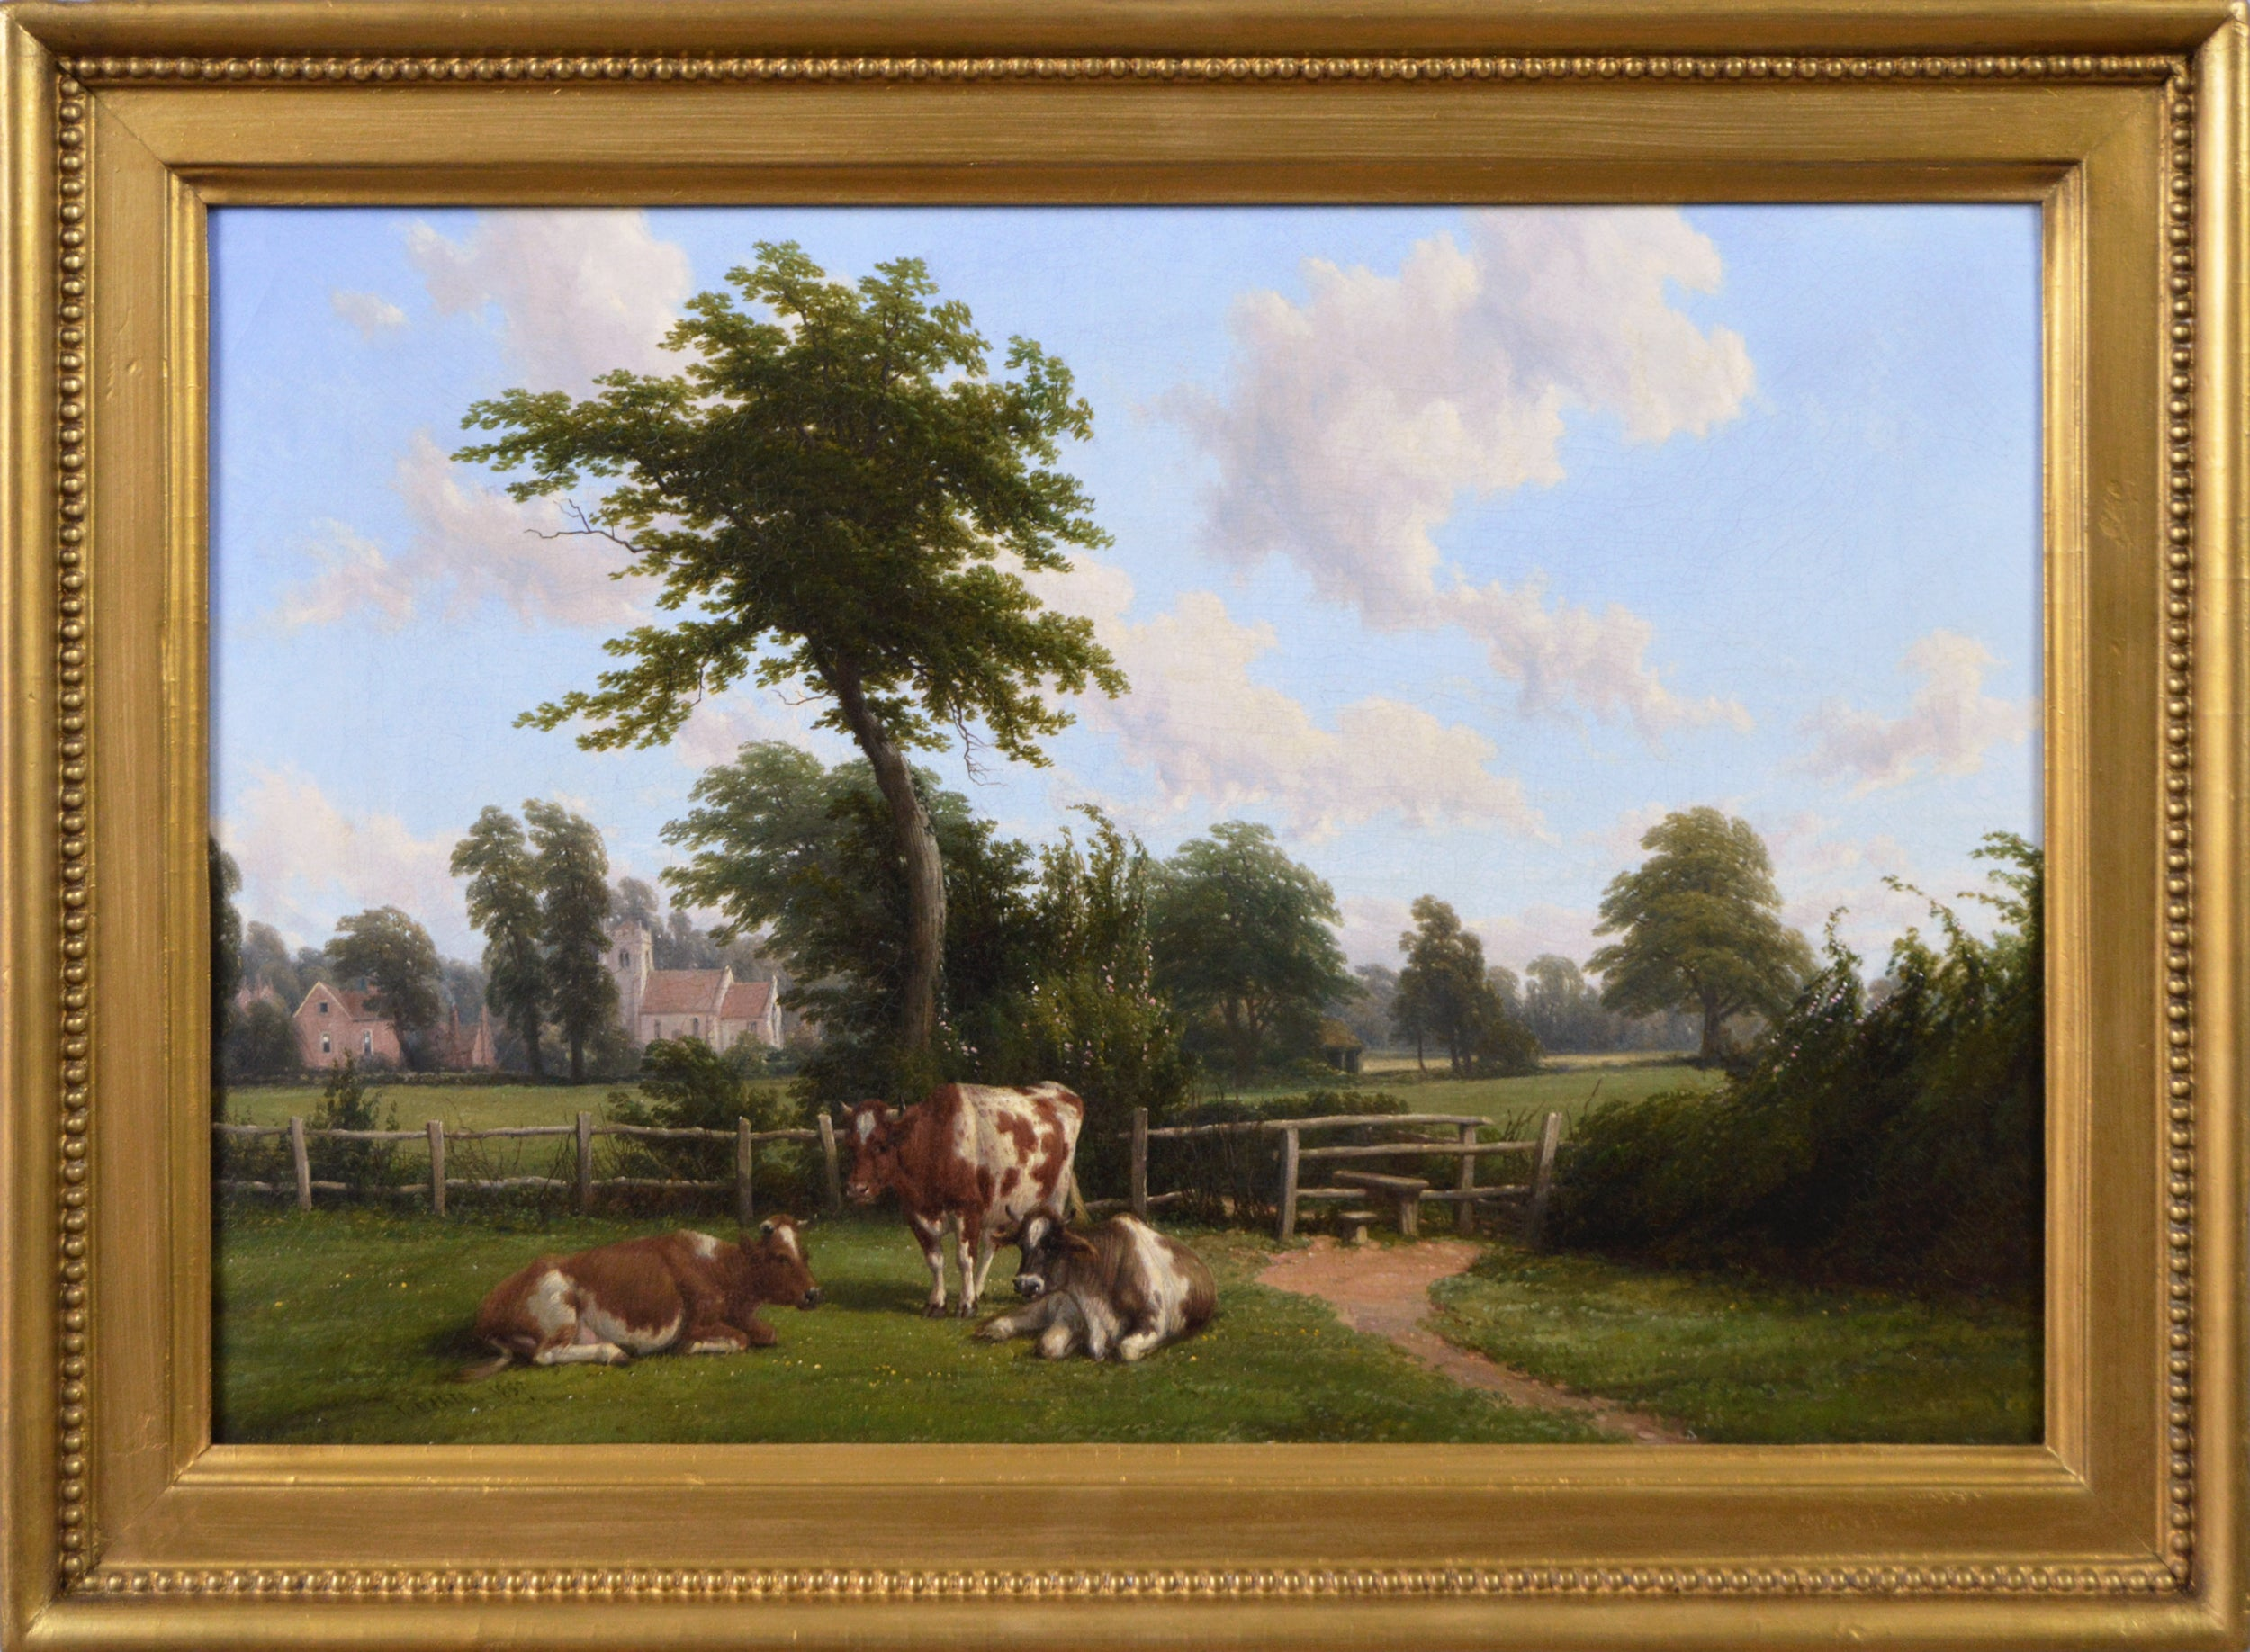 19th Century landscape oil painting of cattle near a church